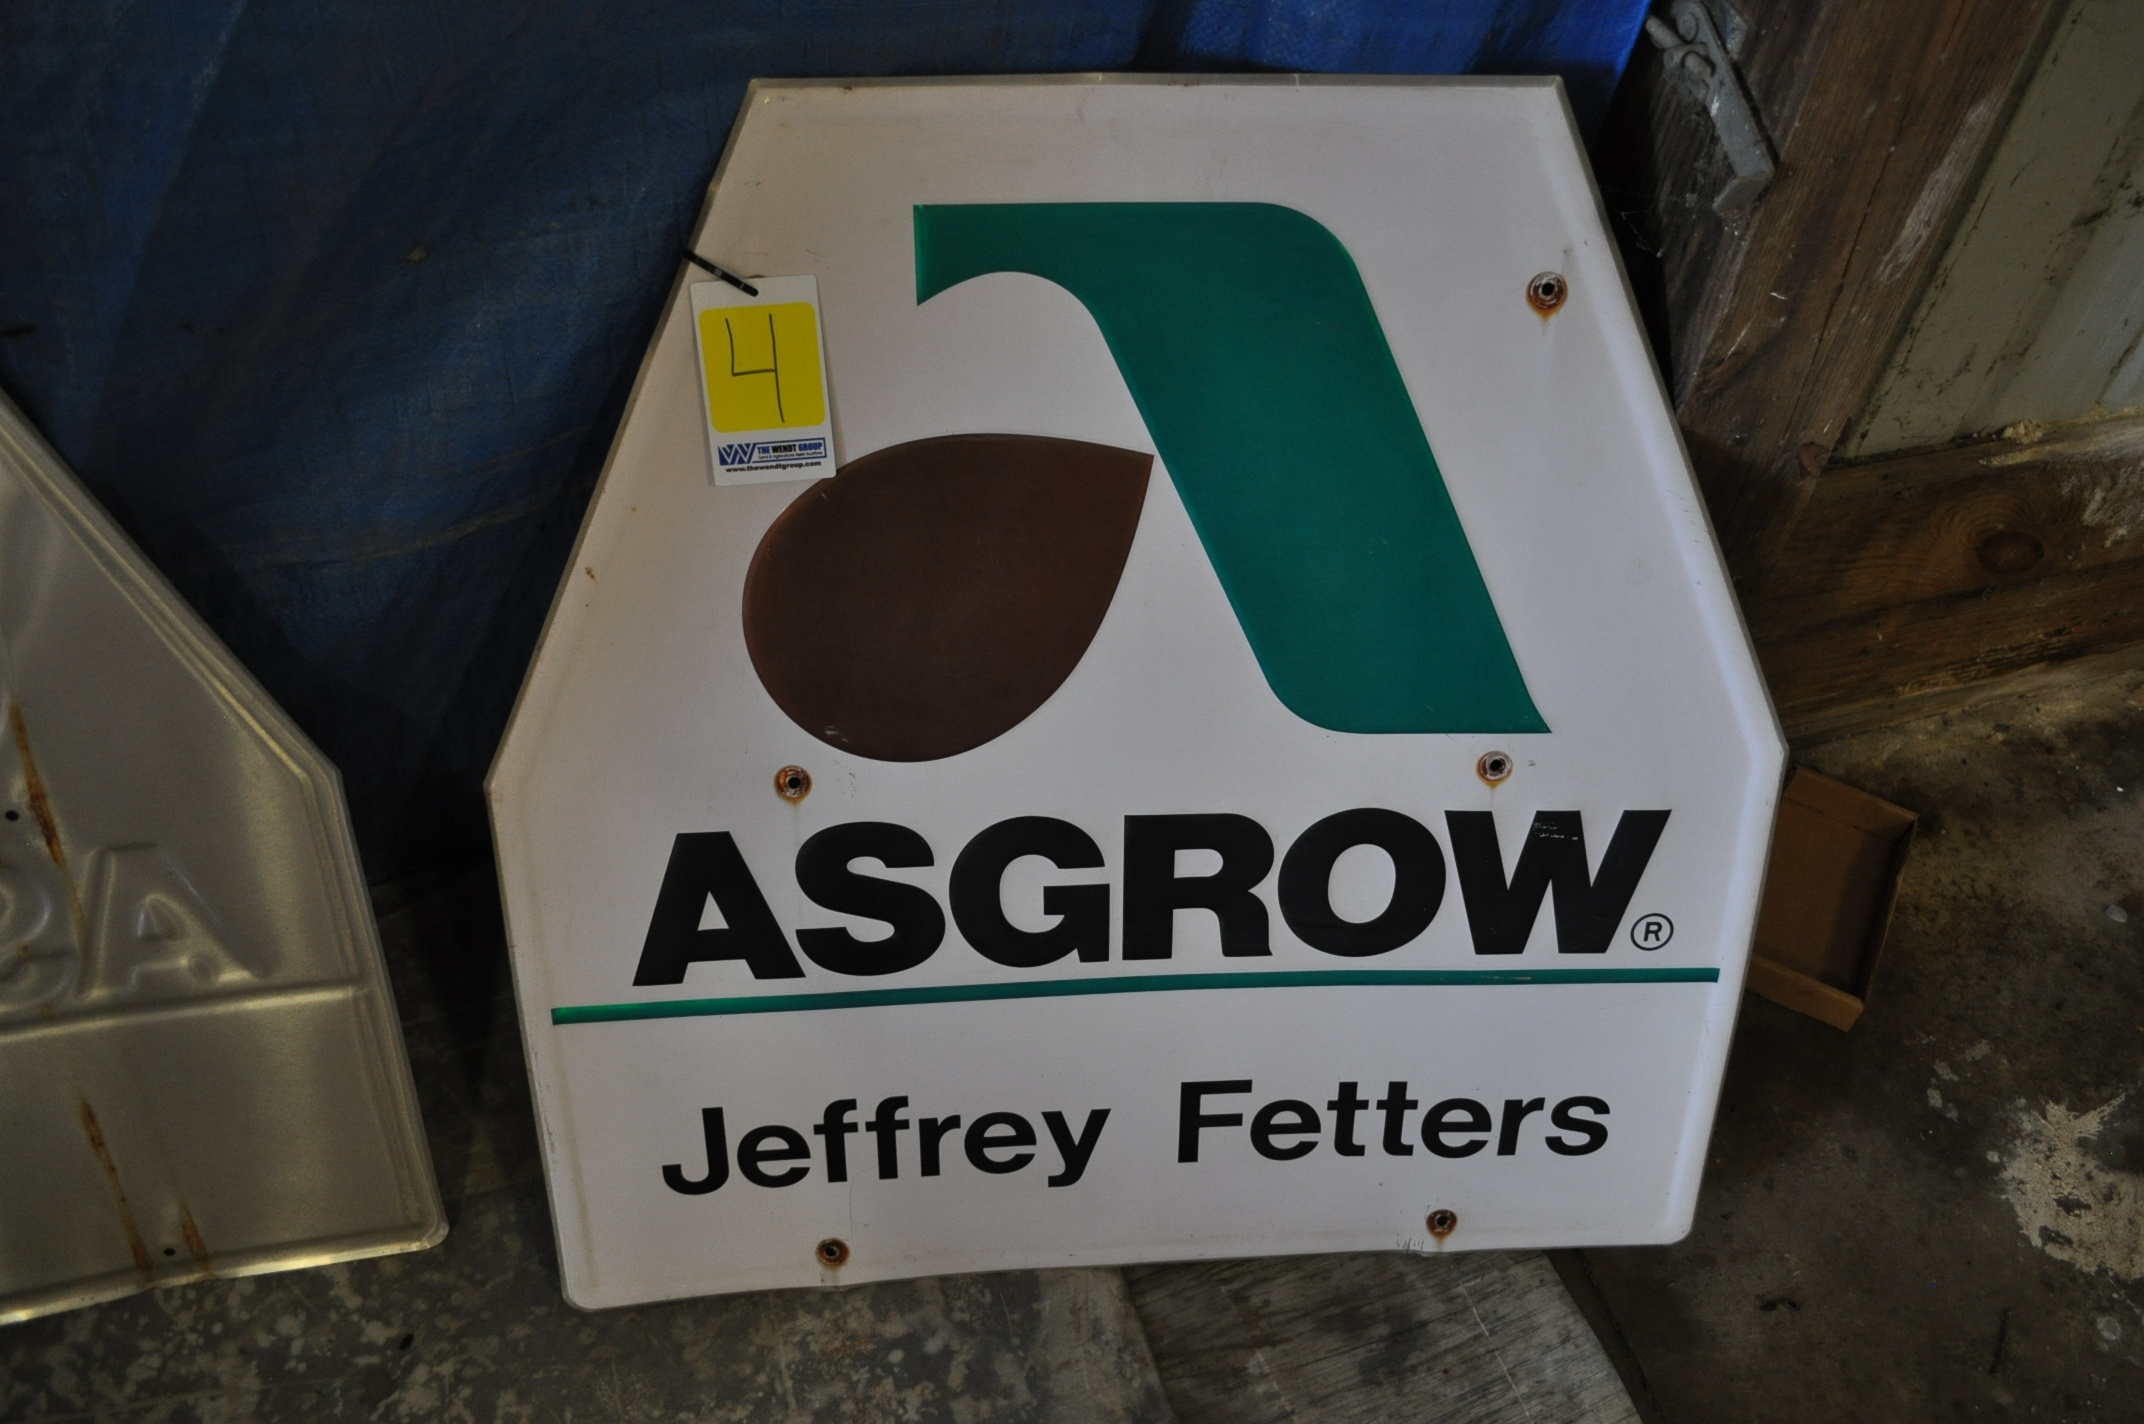 Metal Asgrow seed sign, Jeffery Fetters